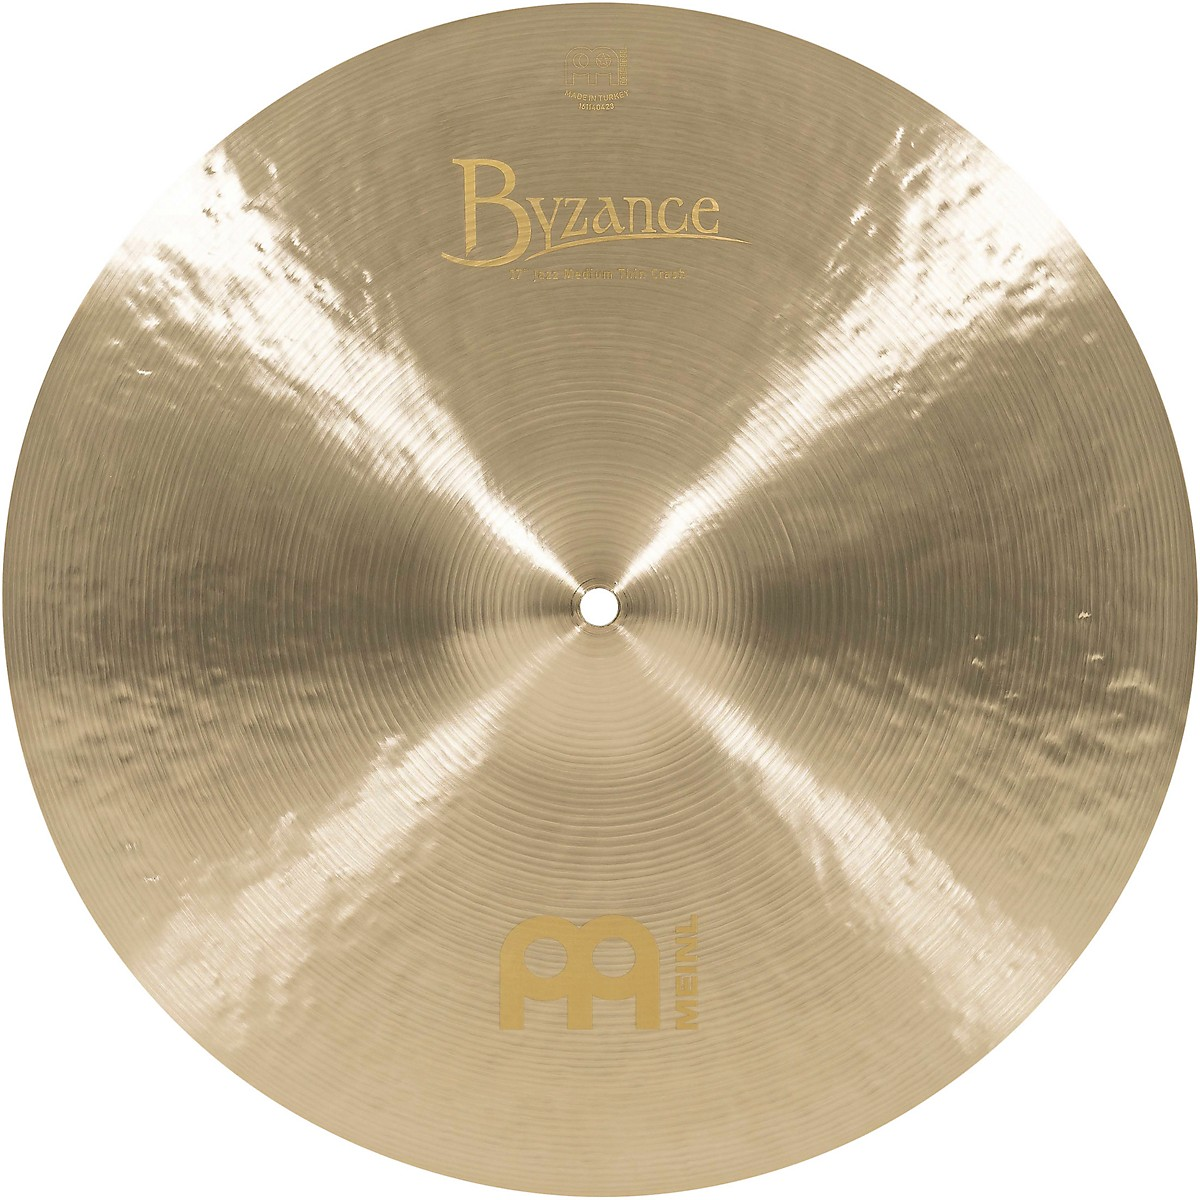 Meinl Byzance Jazz Medium Thin Crash Cymbal